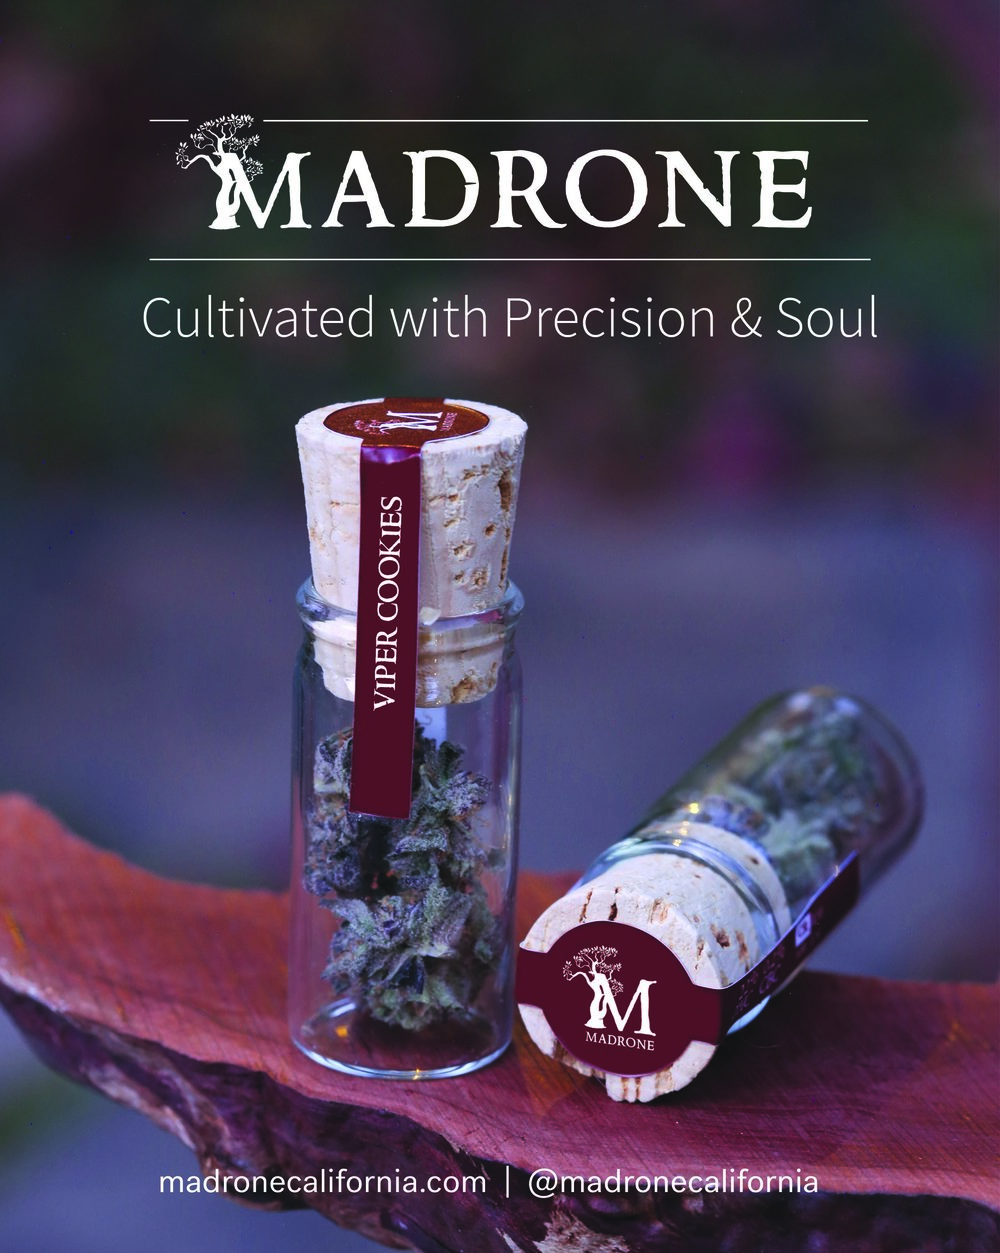 madrone-culture-magazine-ad.jpg